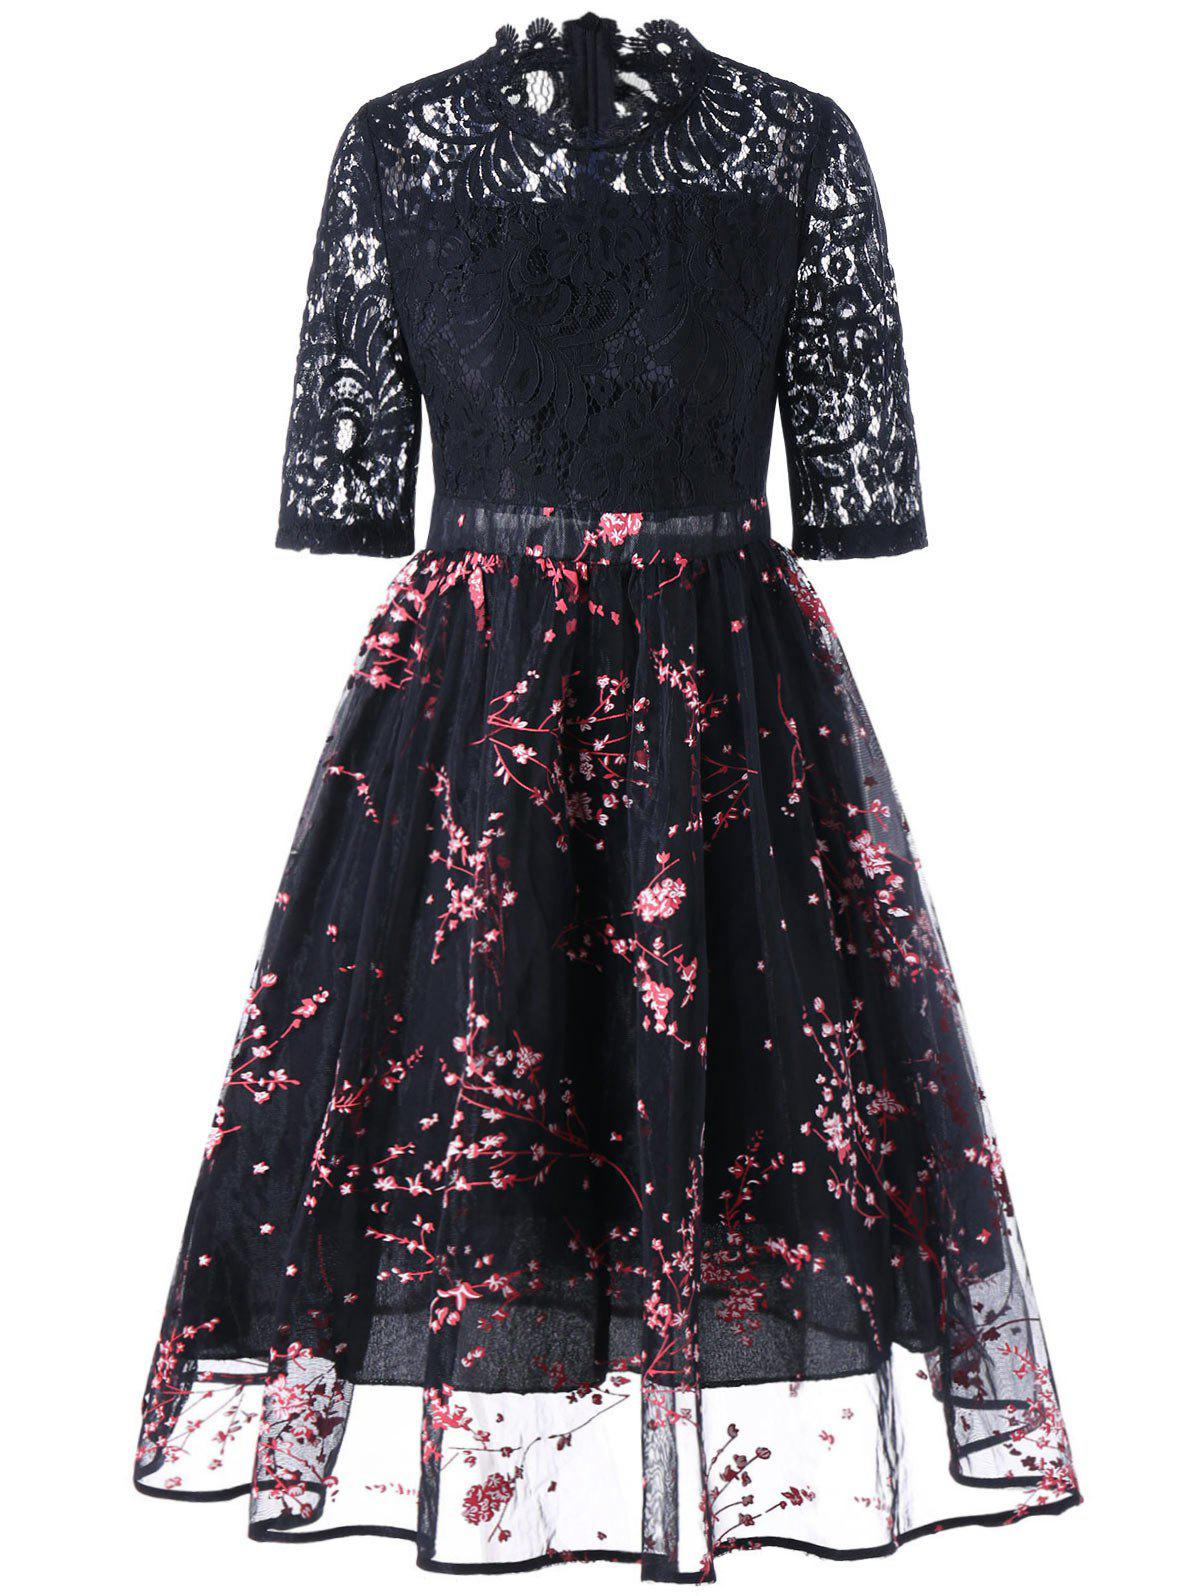 Floral Print Lace Insert Midi Dress - Noir M